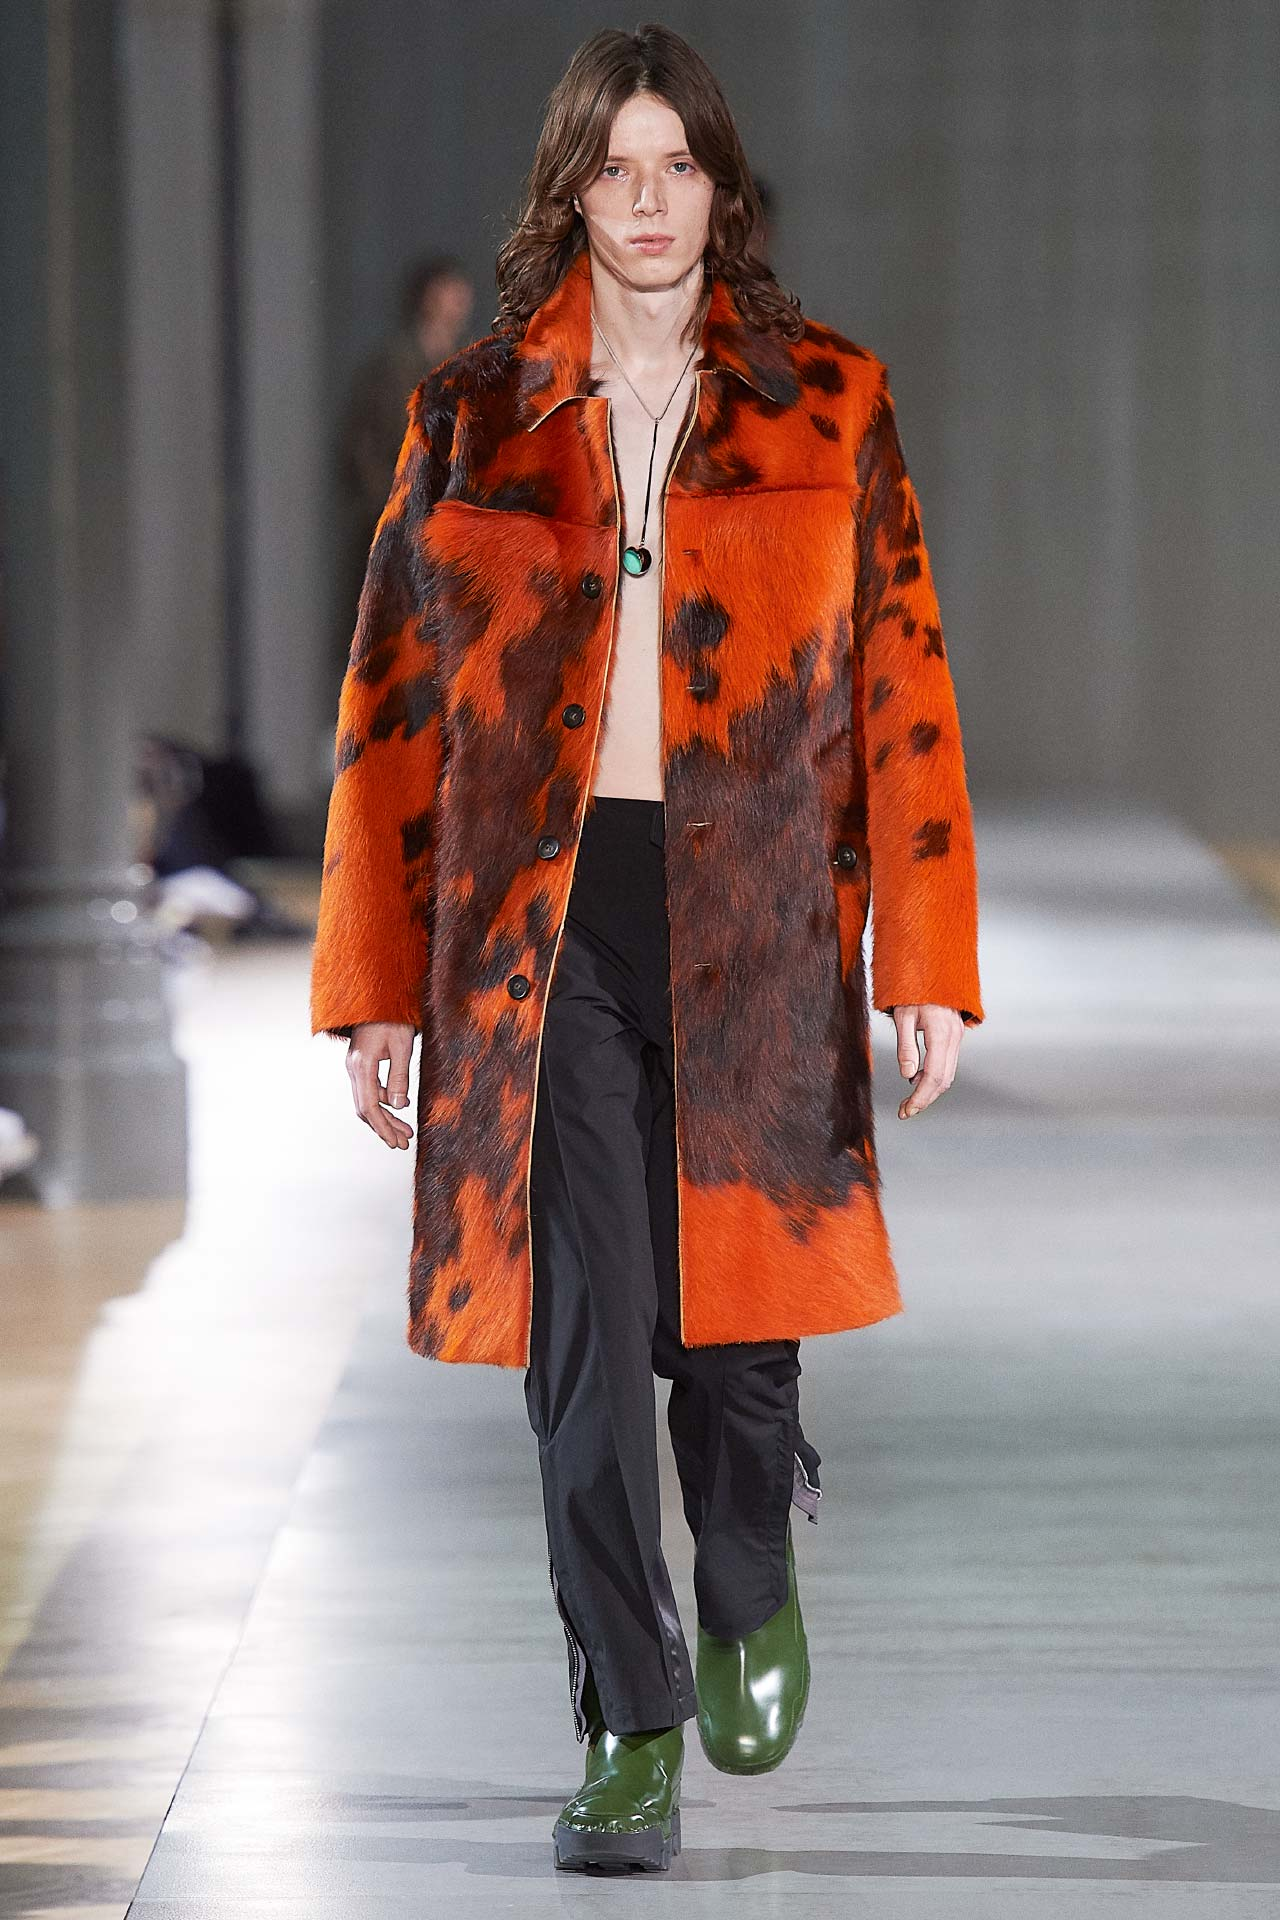 Look Fall/Winter 2019, image 2